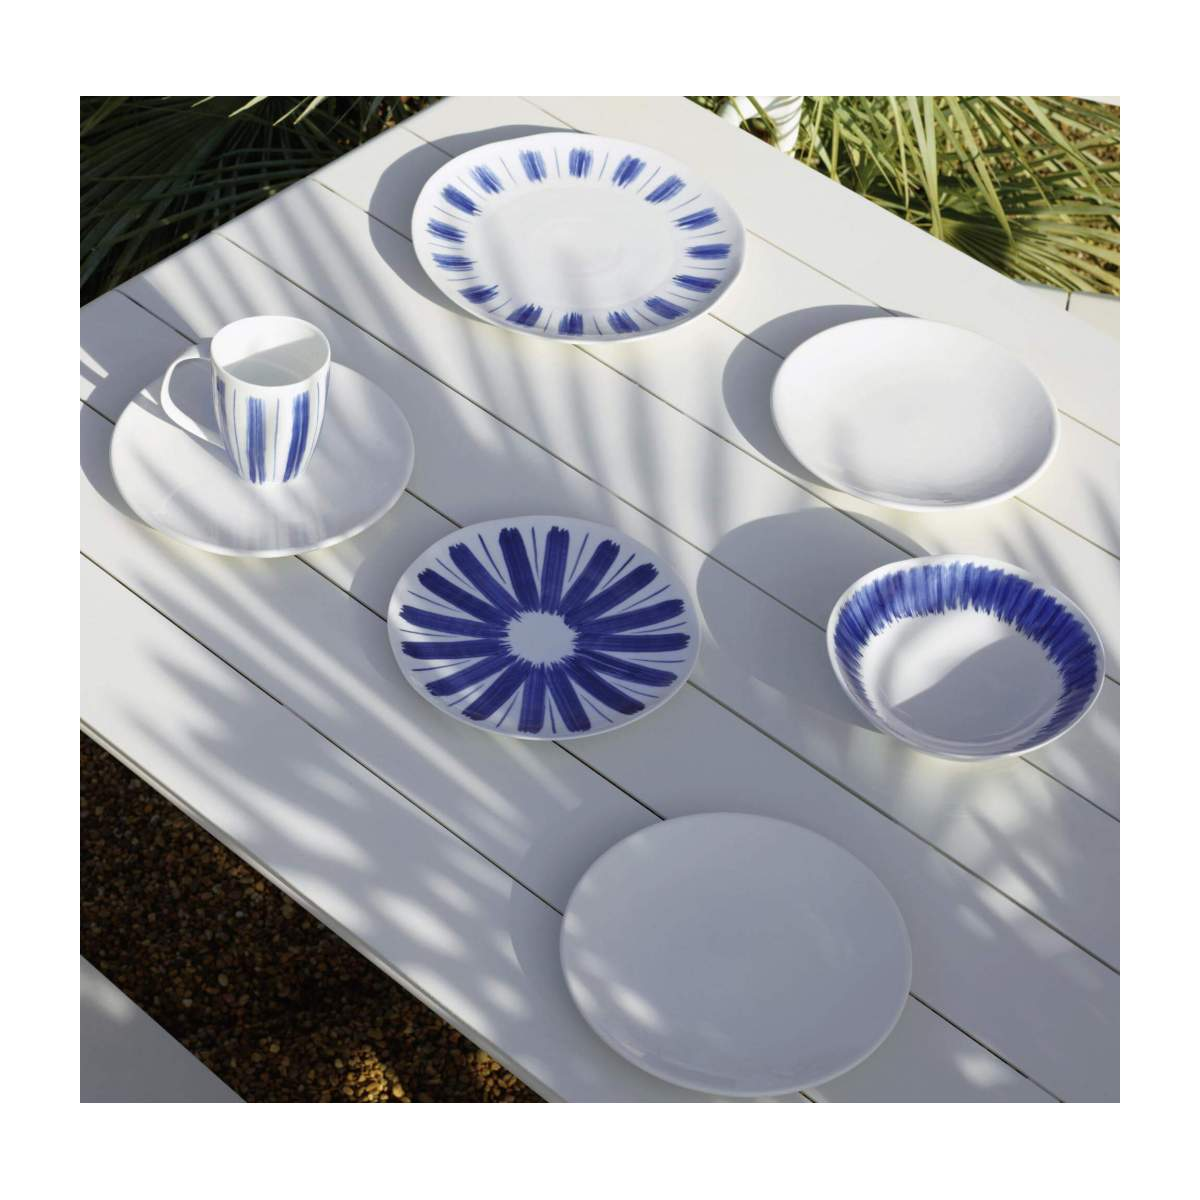 Flat plate made of porcelain, white and blue n°6